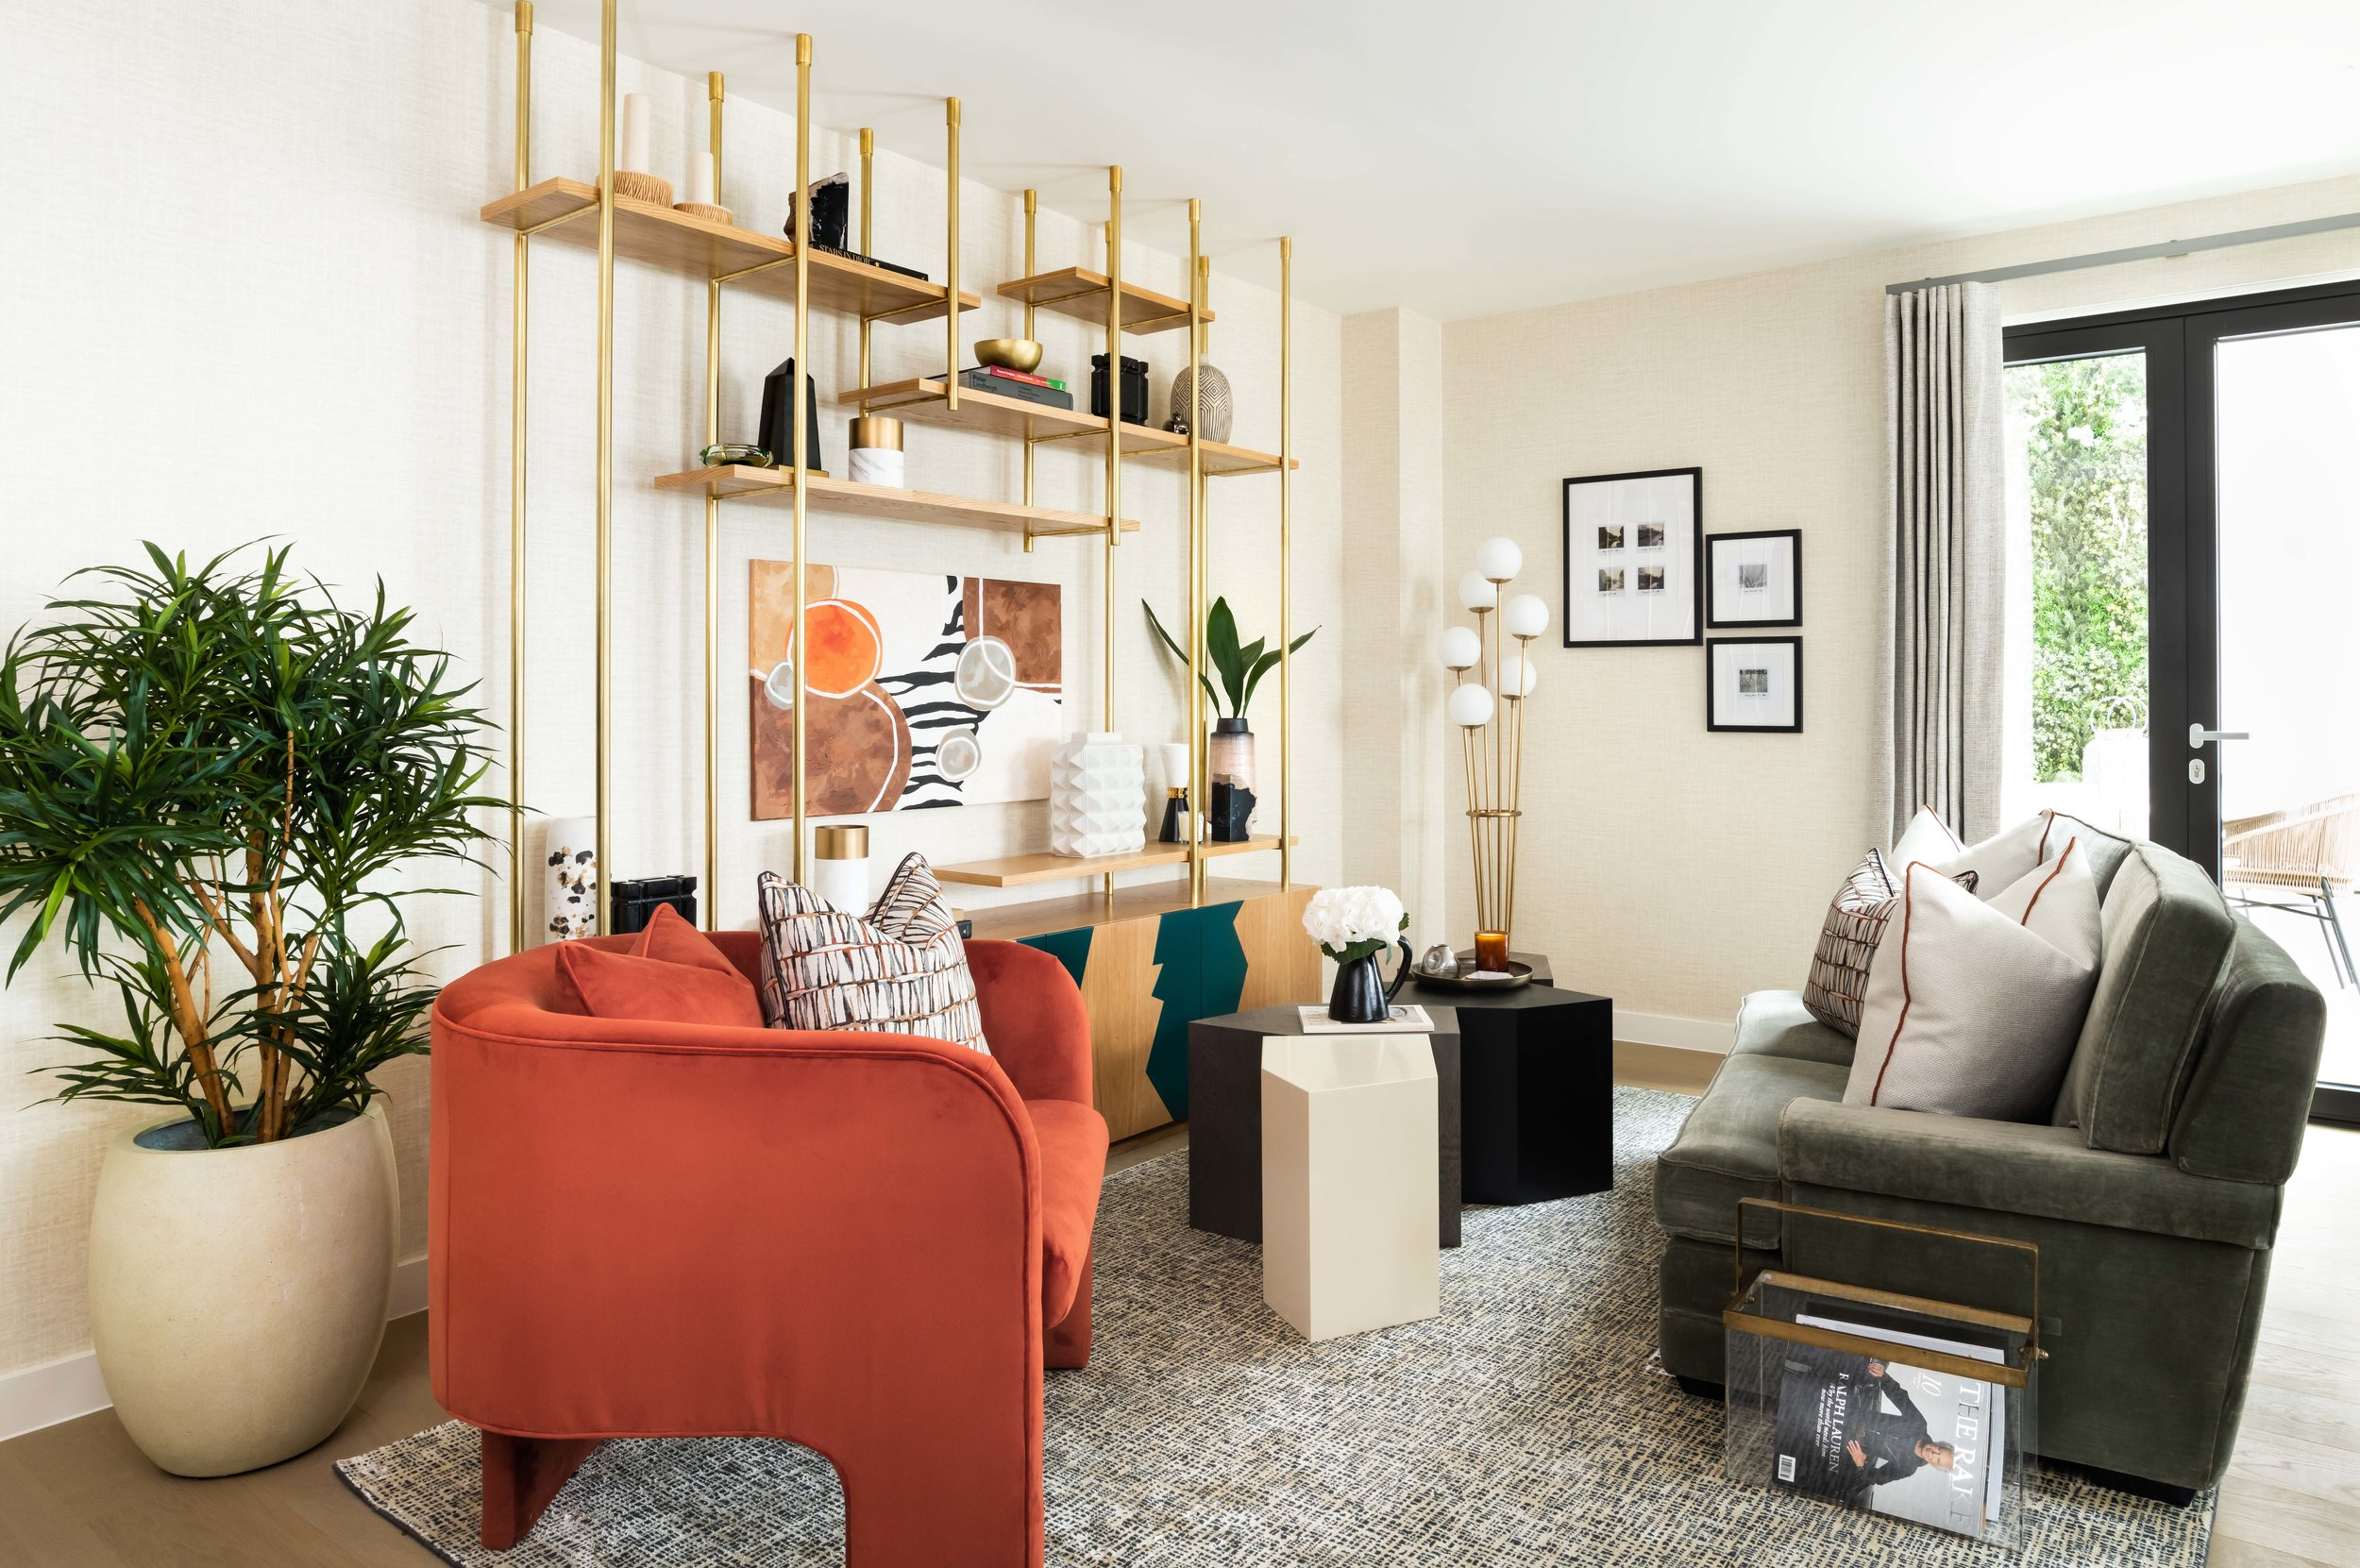 ALONDON_Lyons_Place_002_Living_Room.jpg